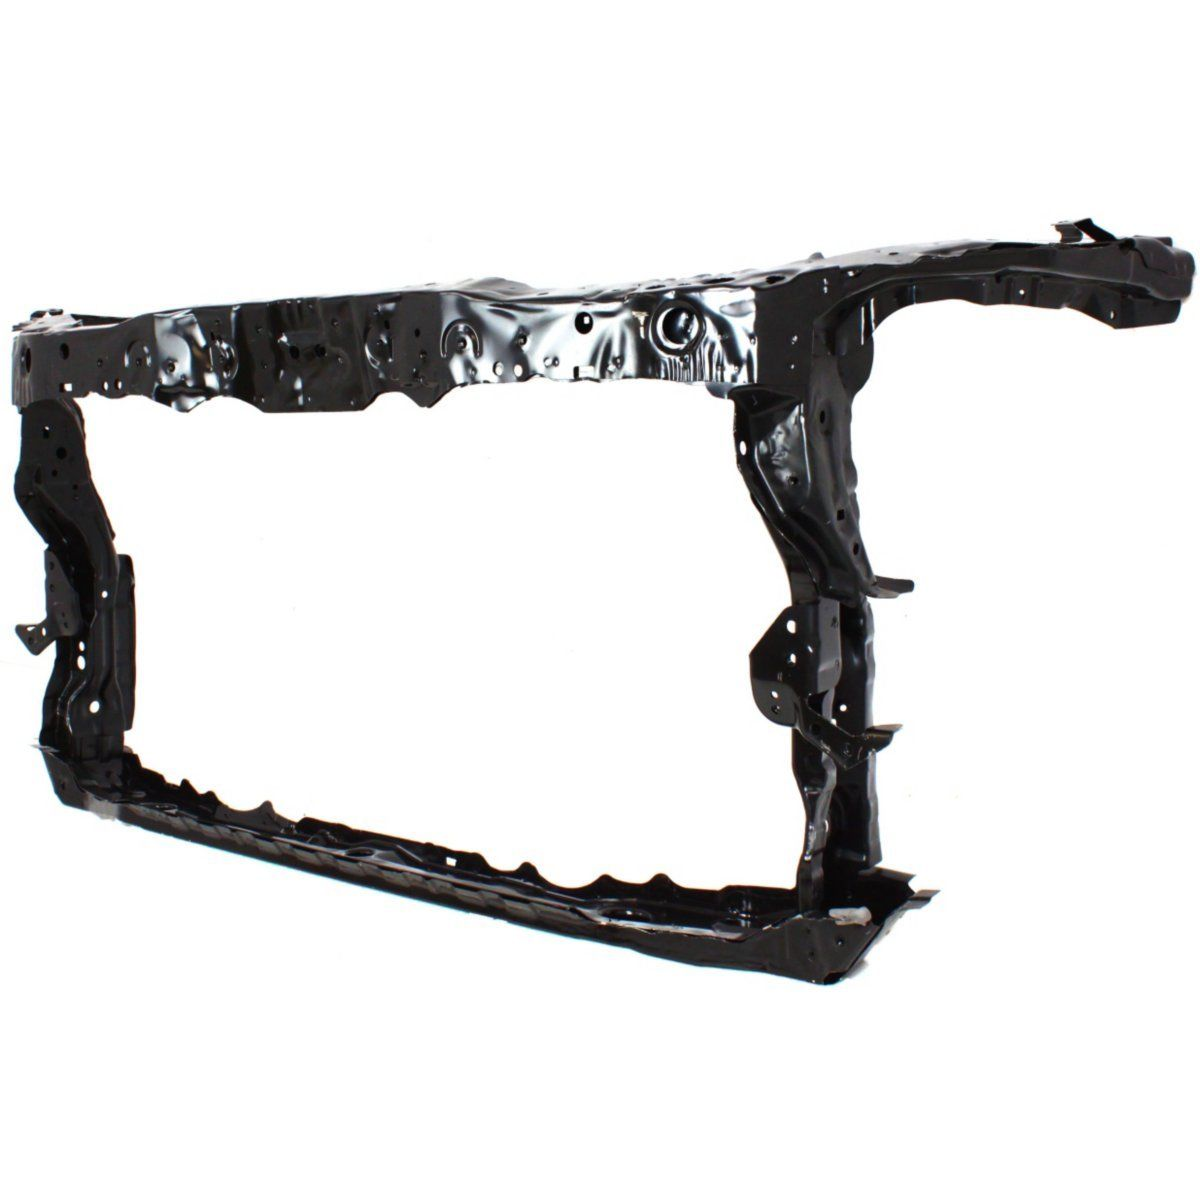 Radiator Support For 2009-2010 Acura TSX Primed Assembly